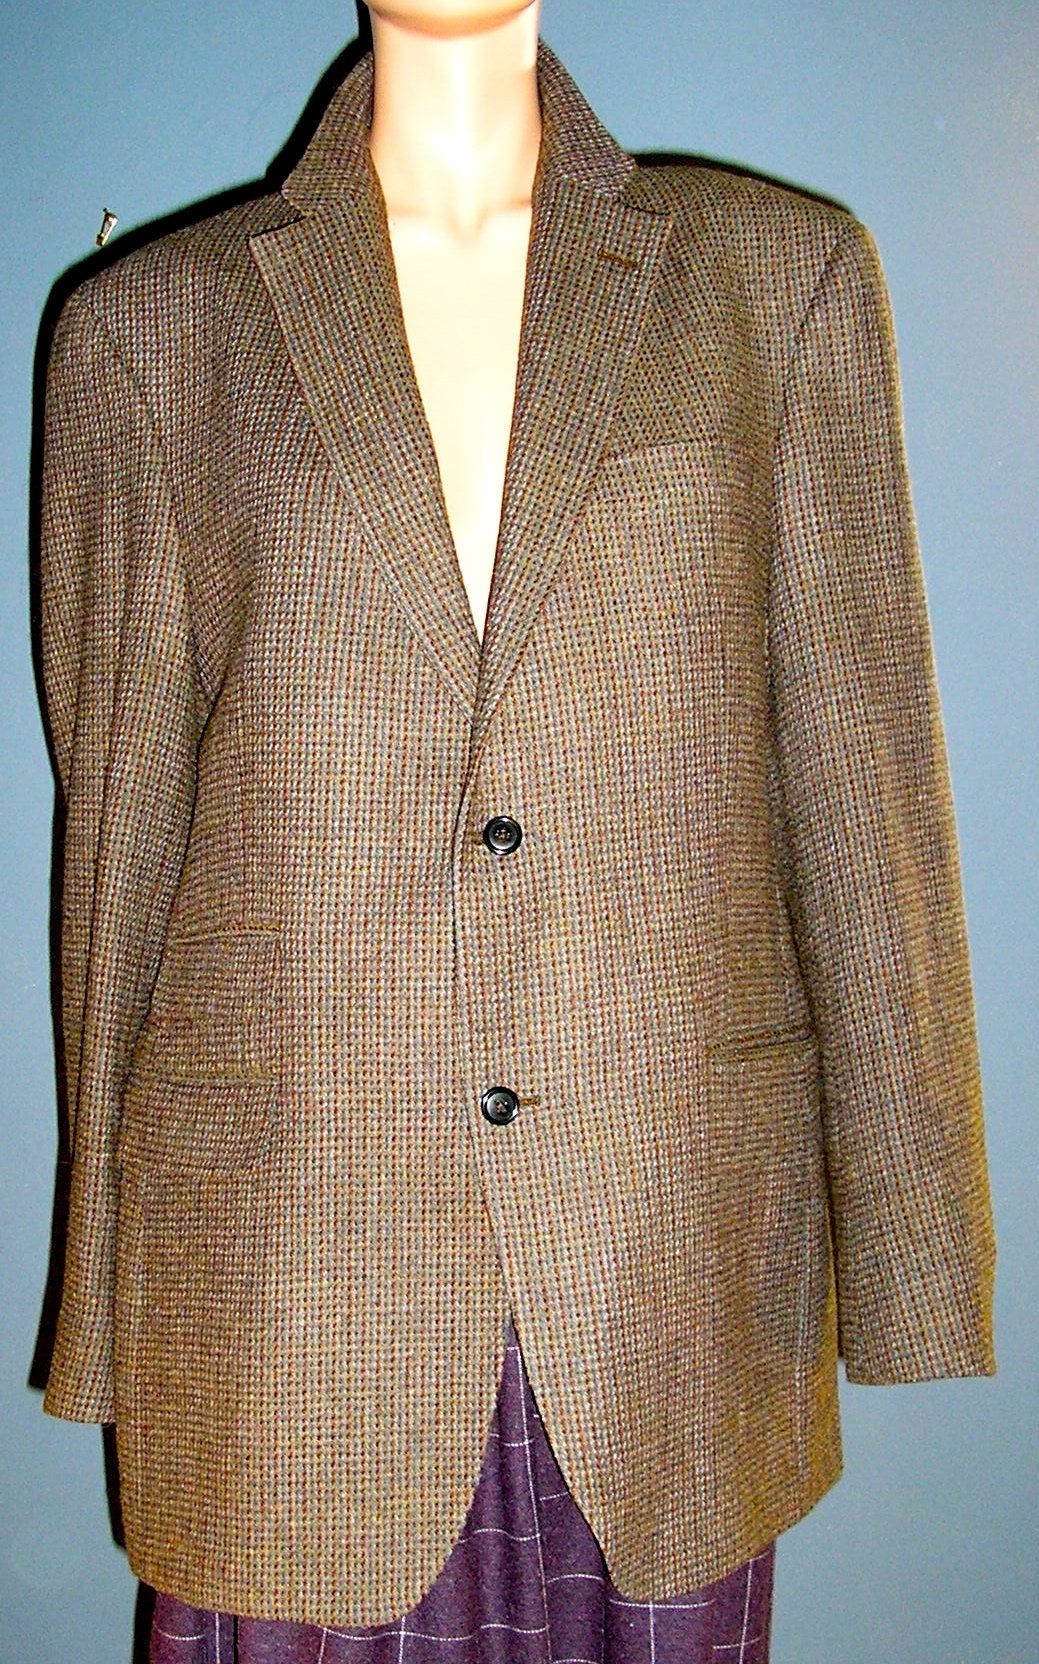 Vintage Austin Reed Wool Tweed Blazer Jacket London Etsy In 2020 Vintage Austin Austin Reed Tweed Blazer